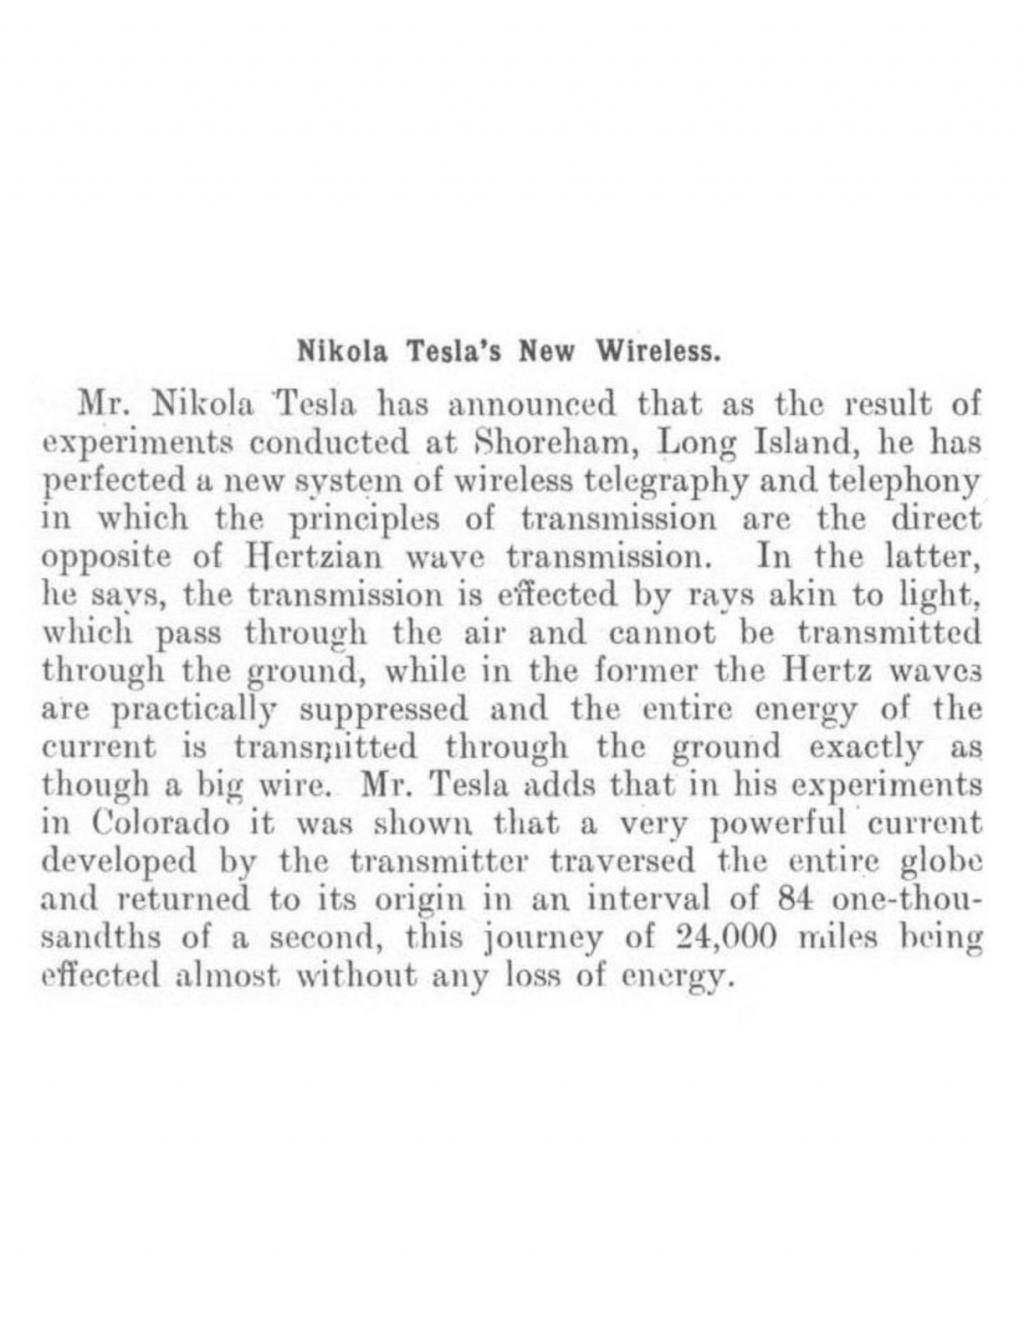 Preview of Nikola Tesla's New Wireless article